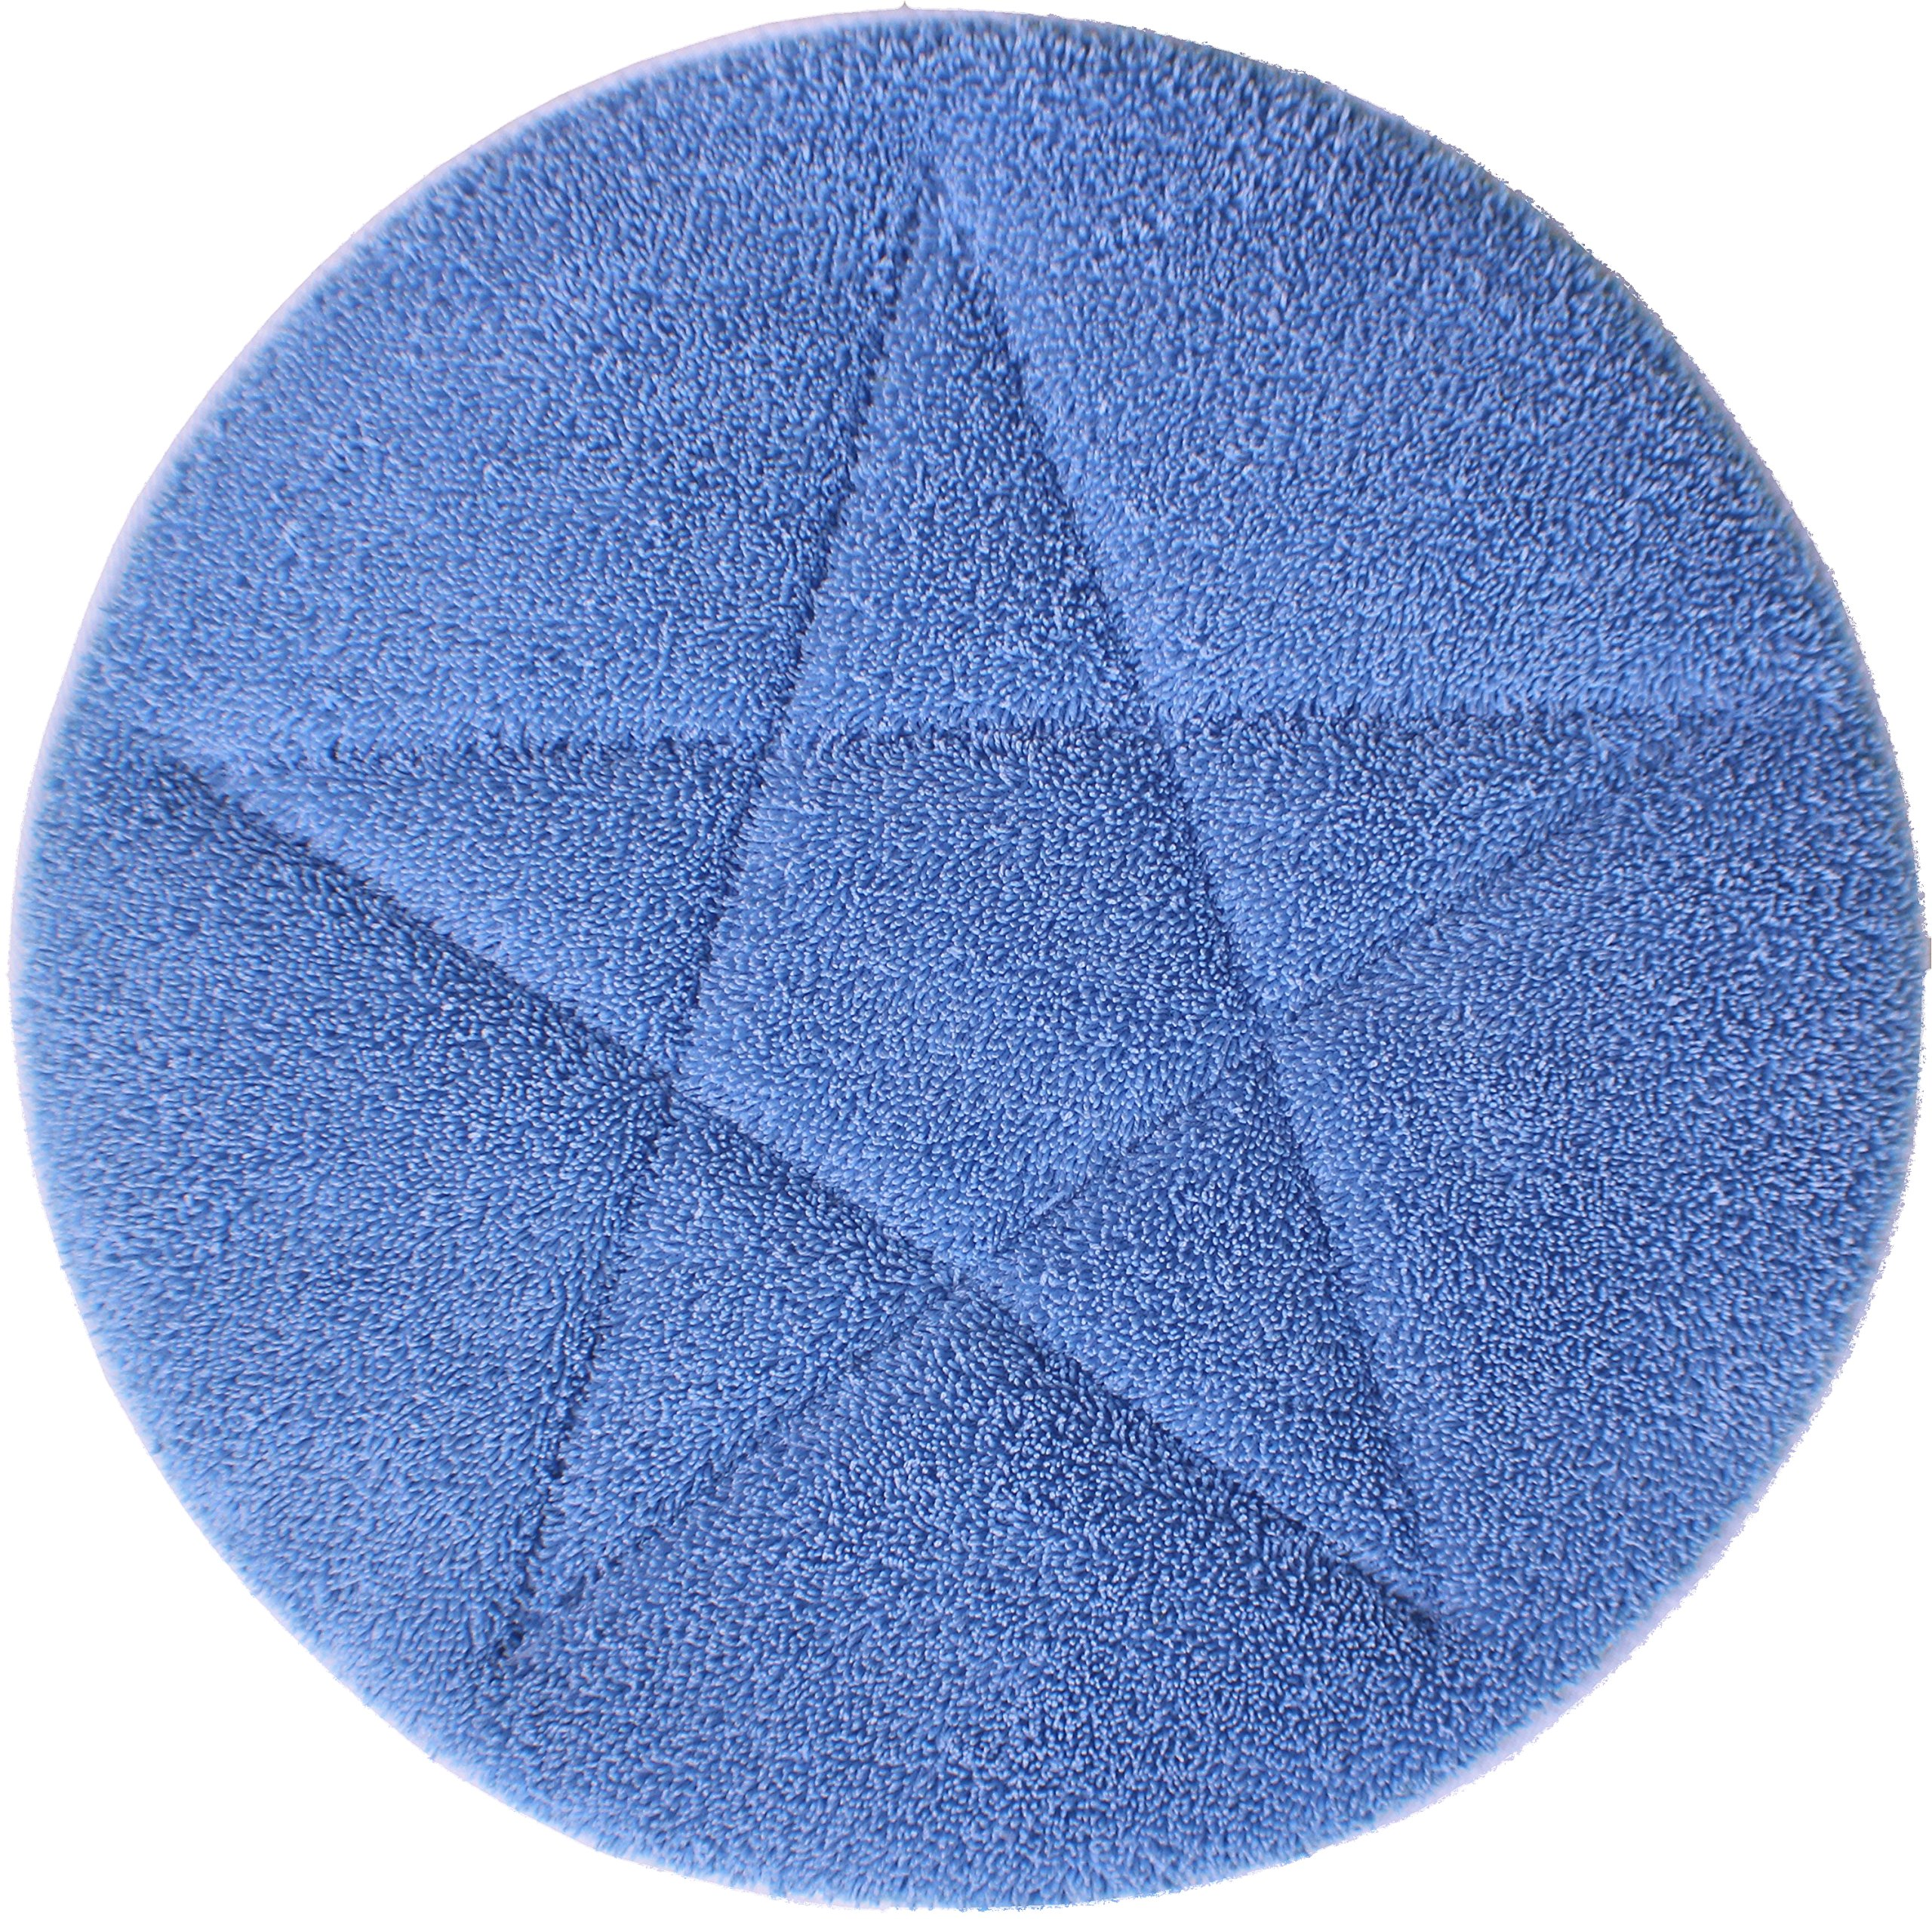 All-Star Microfiber Carpet Bonnets | 17'' Blue - 6 Pack by Direct Mop Sales